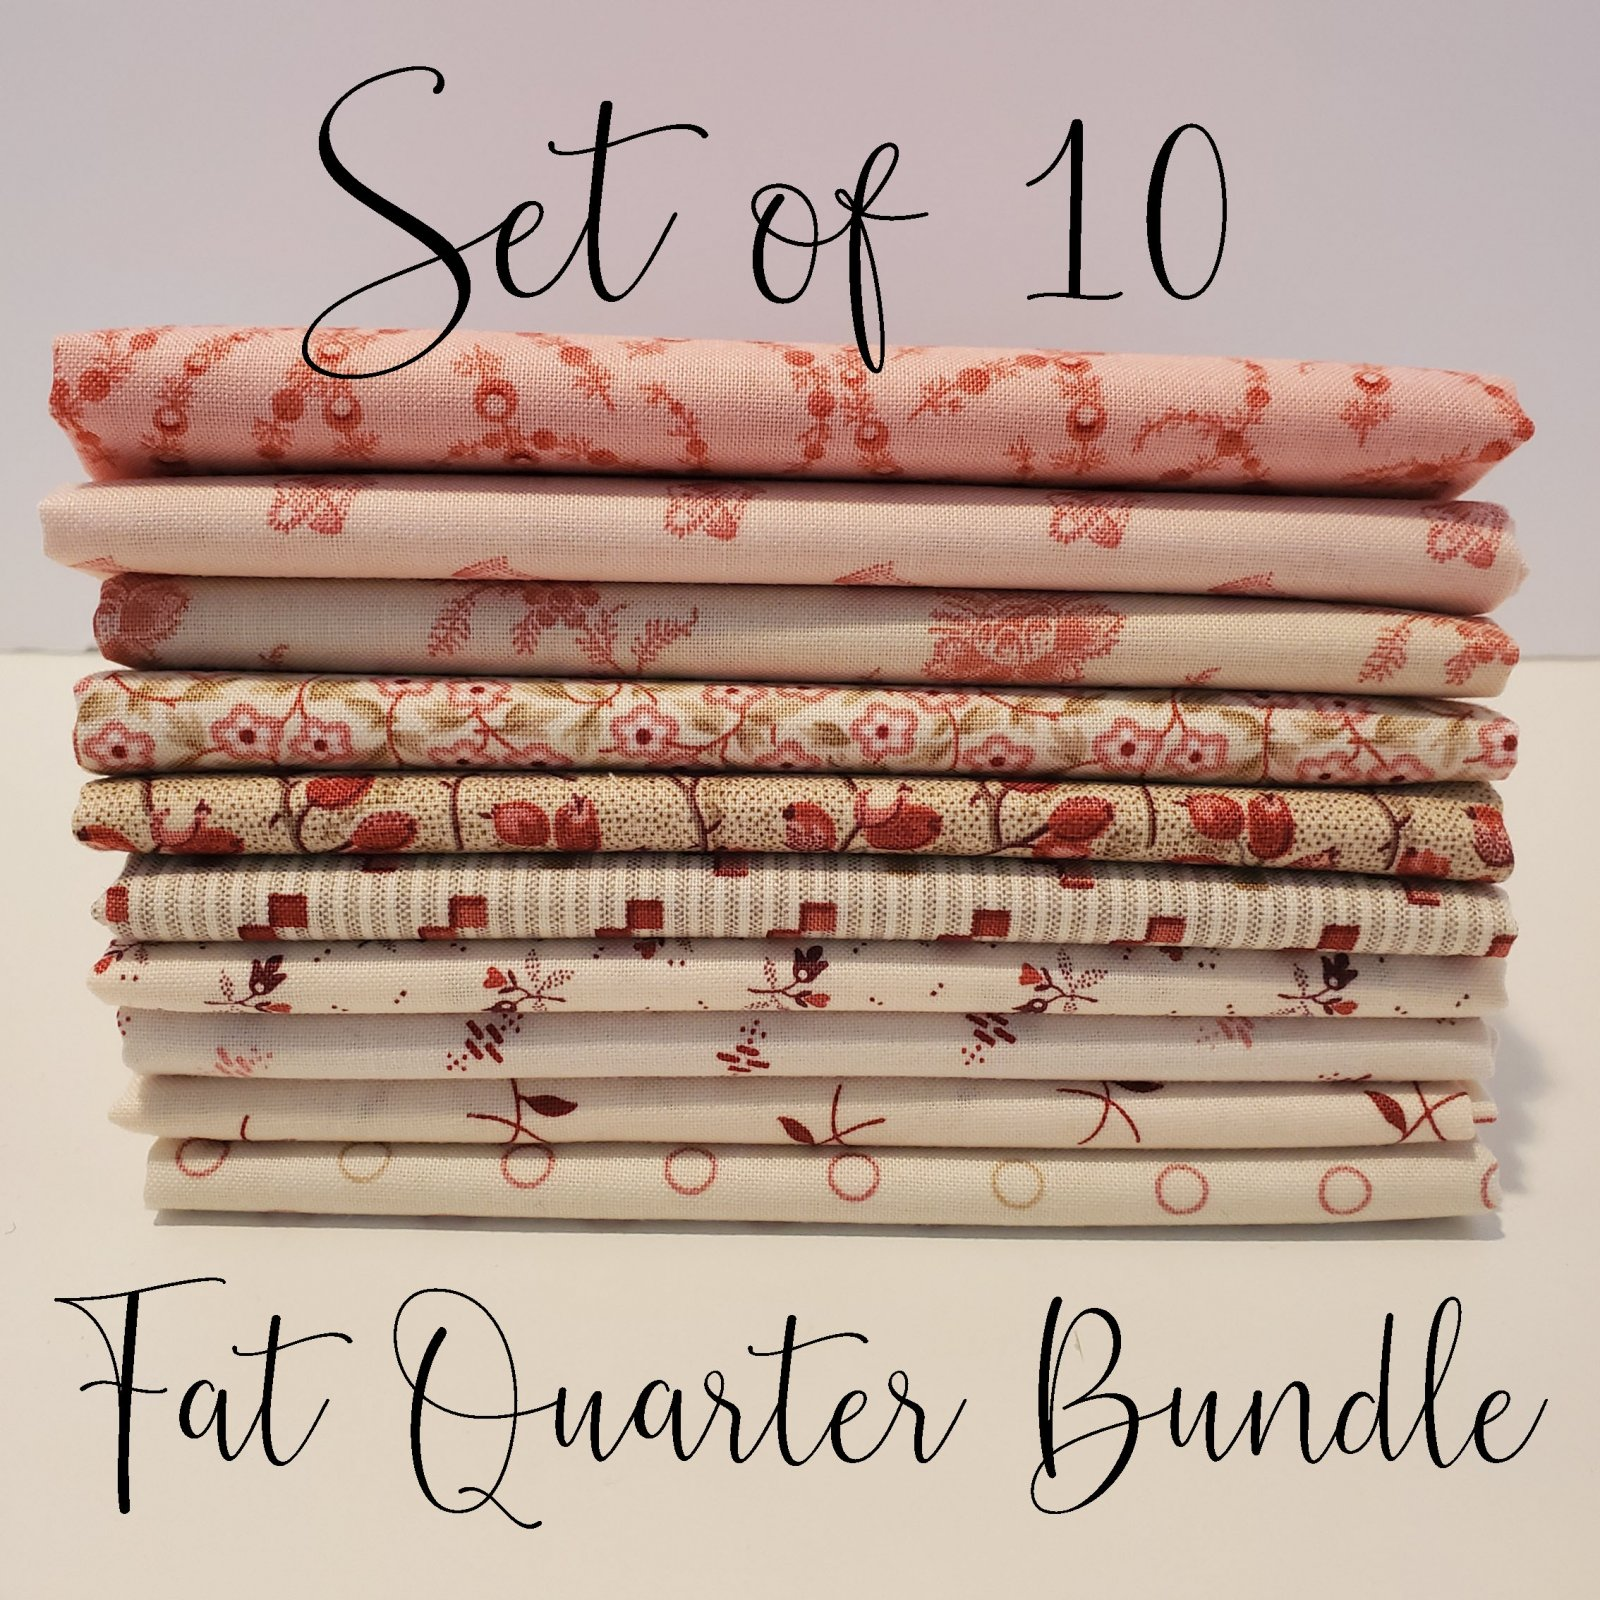 Laundy Basket Quilts Soft Pinks - 10 Fat Quarter Bundle